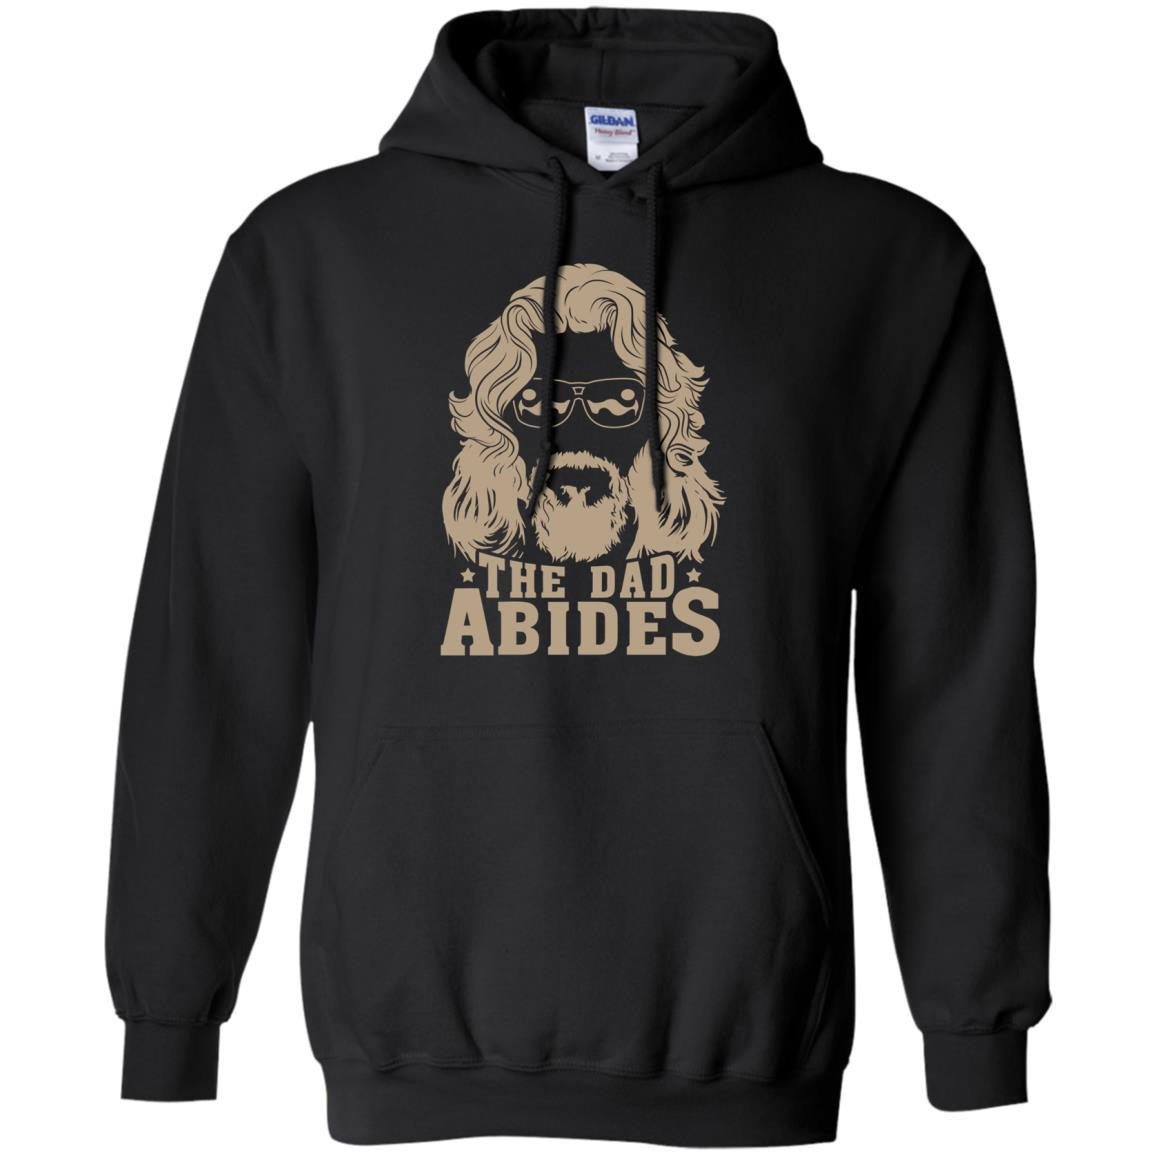 Sweatshirts - The Dad Abides Hoodie